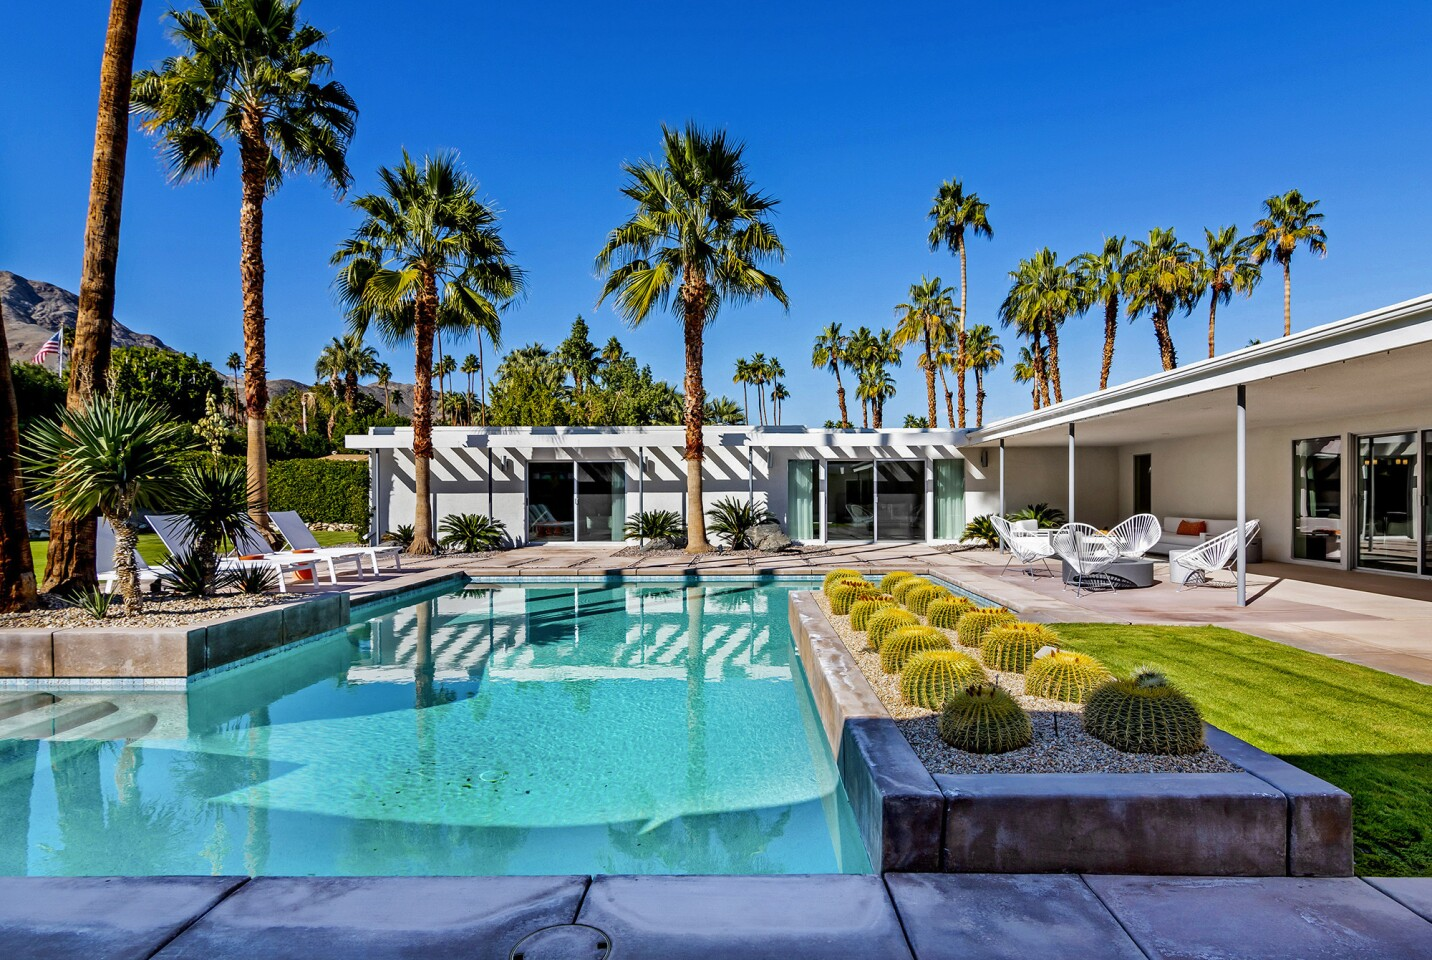 Home of the Week | The indoor-outdoor experience in Rancho Mirage